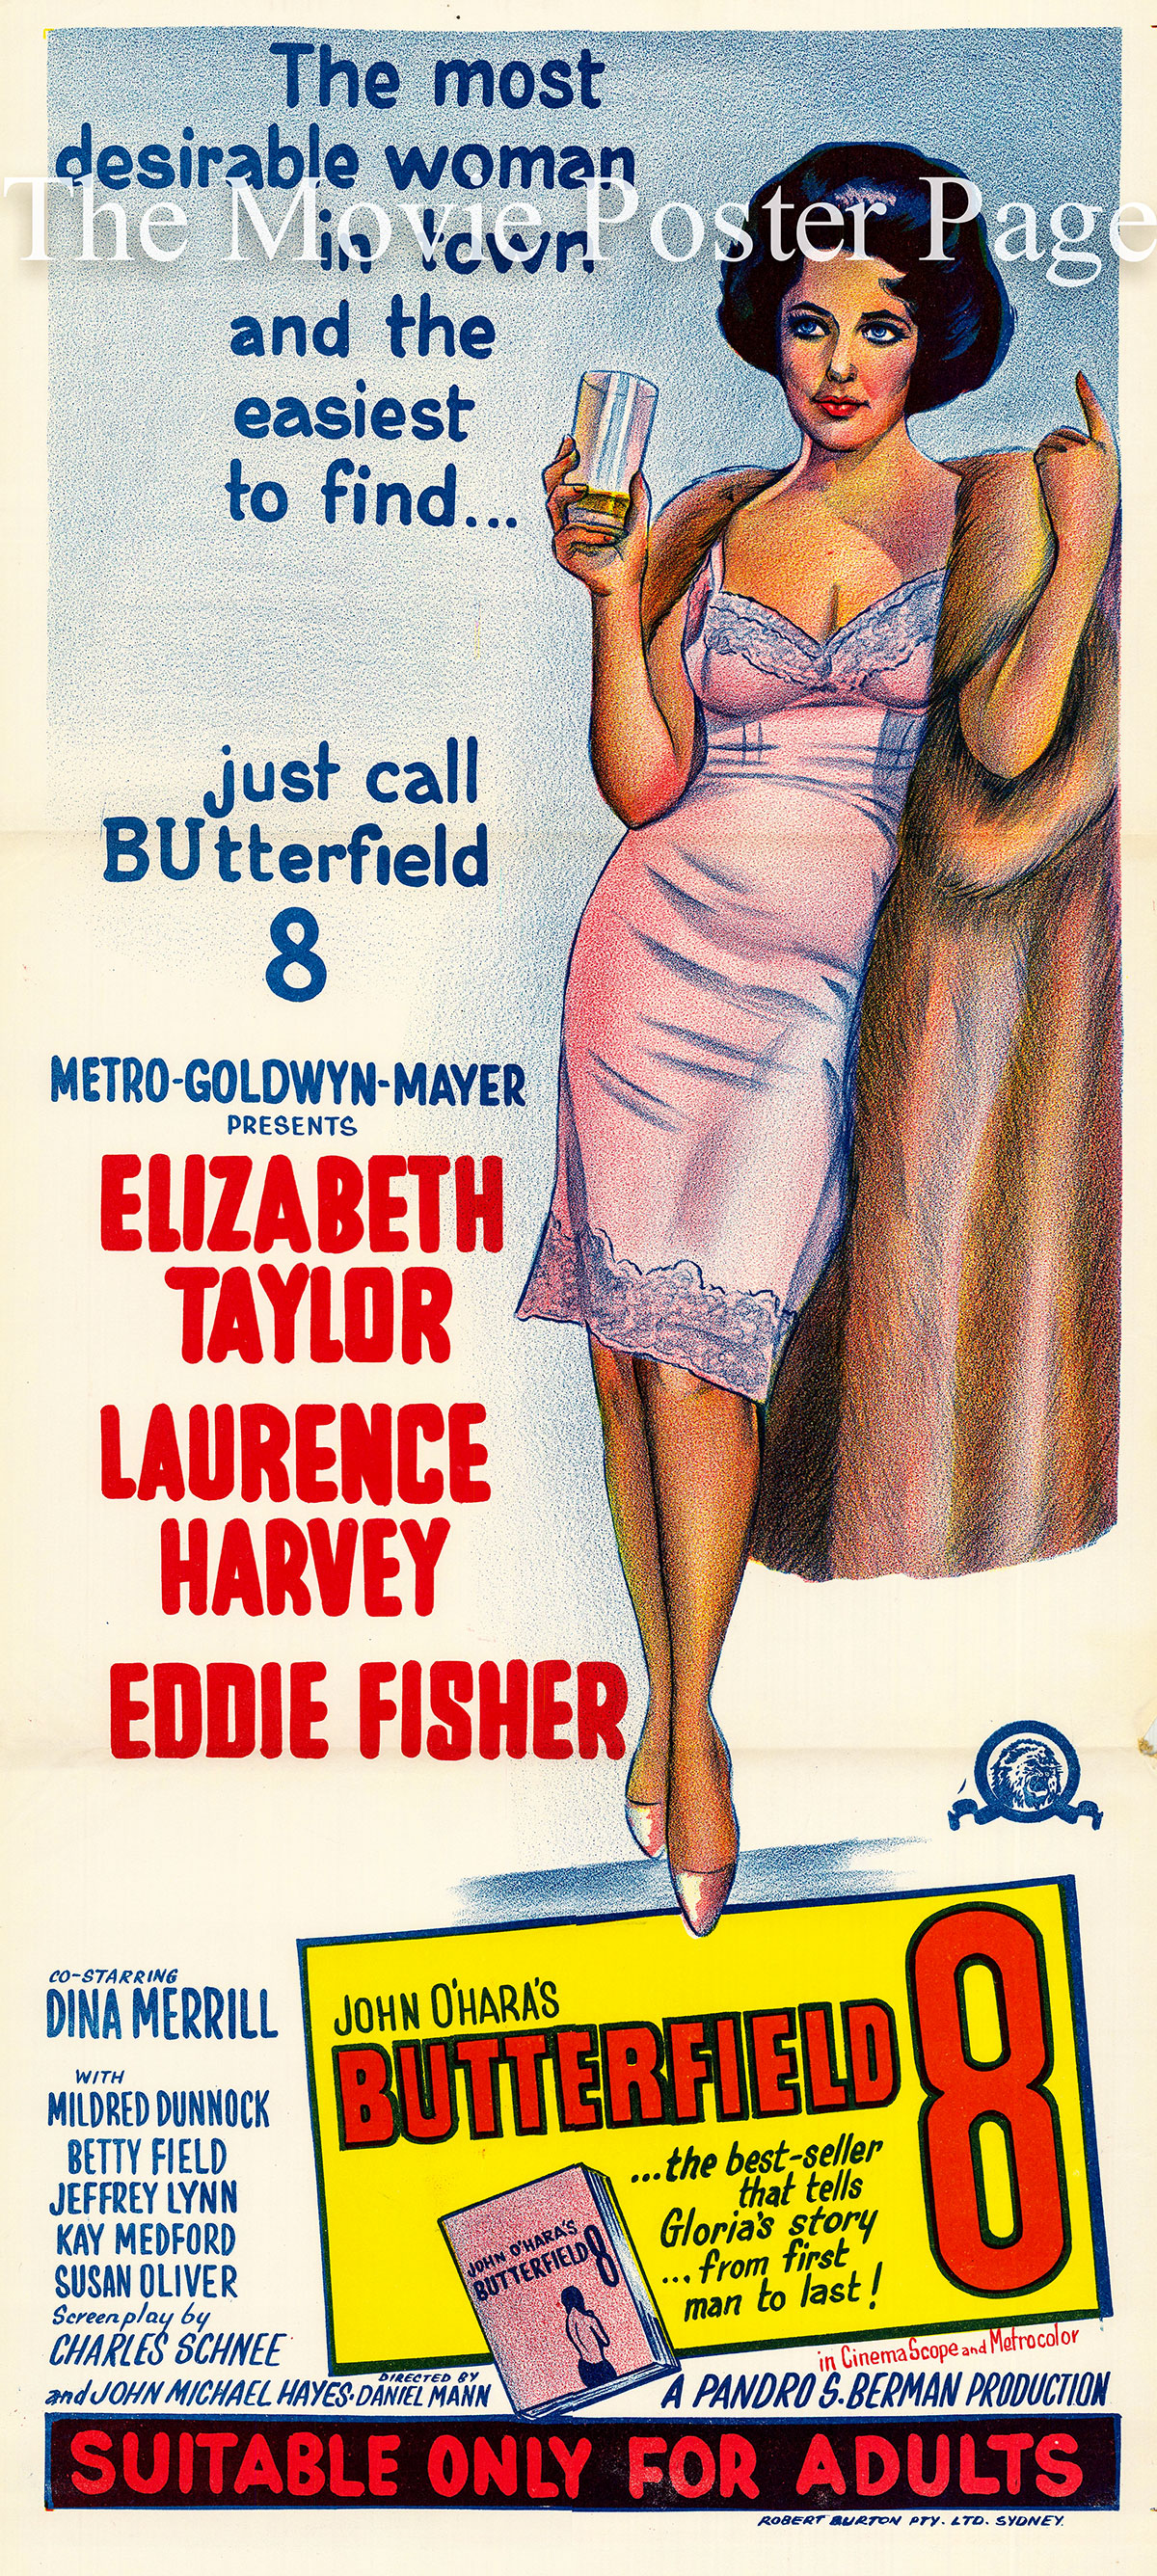 Pictured is an Australian day bill promotional poster for the 1960 Daniel Mann film Butterfield 8 starring Eizabeth Taylor.